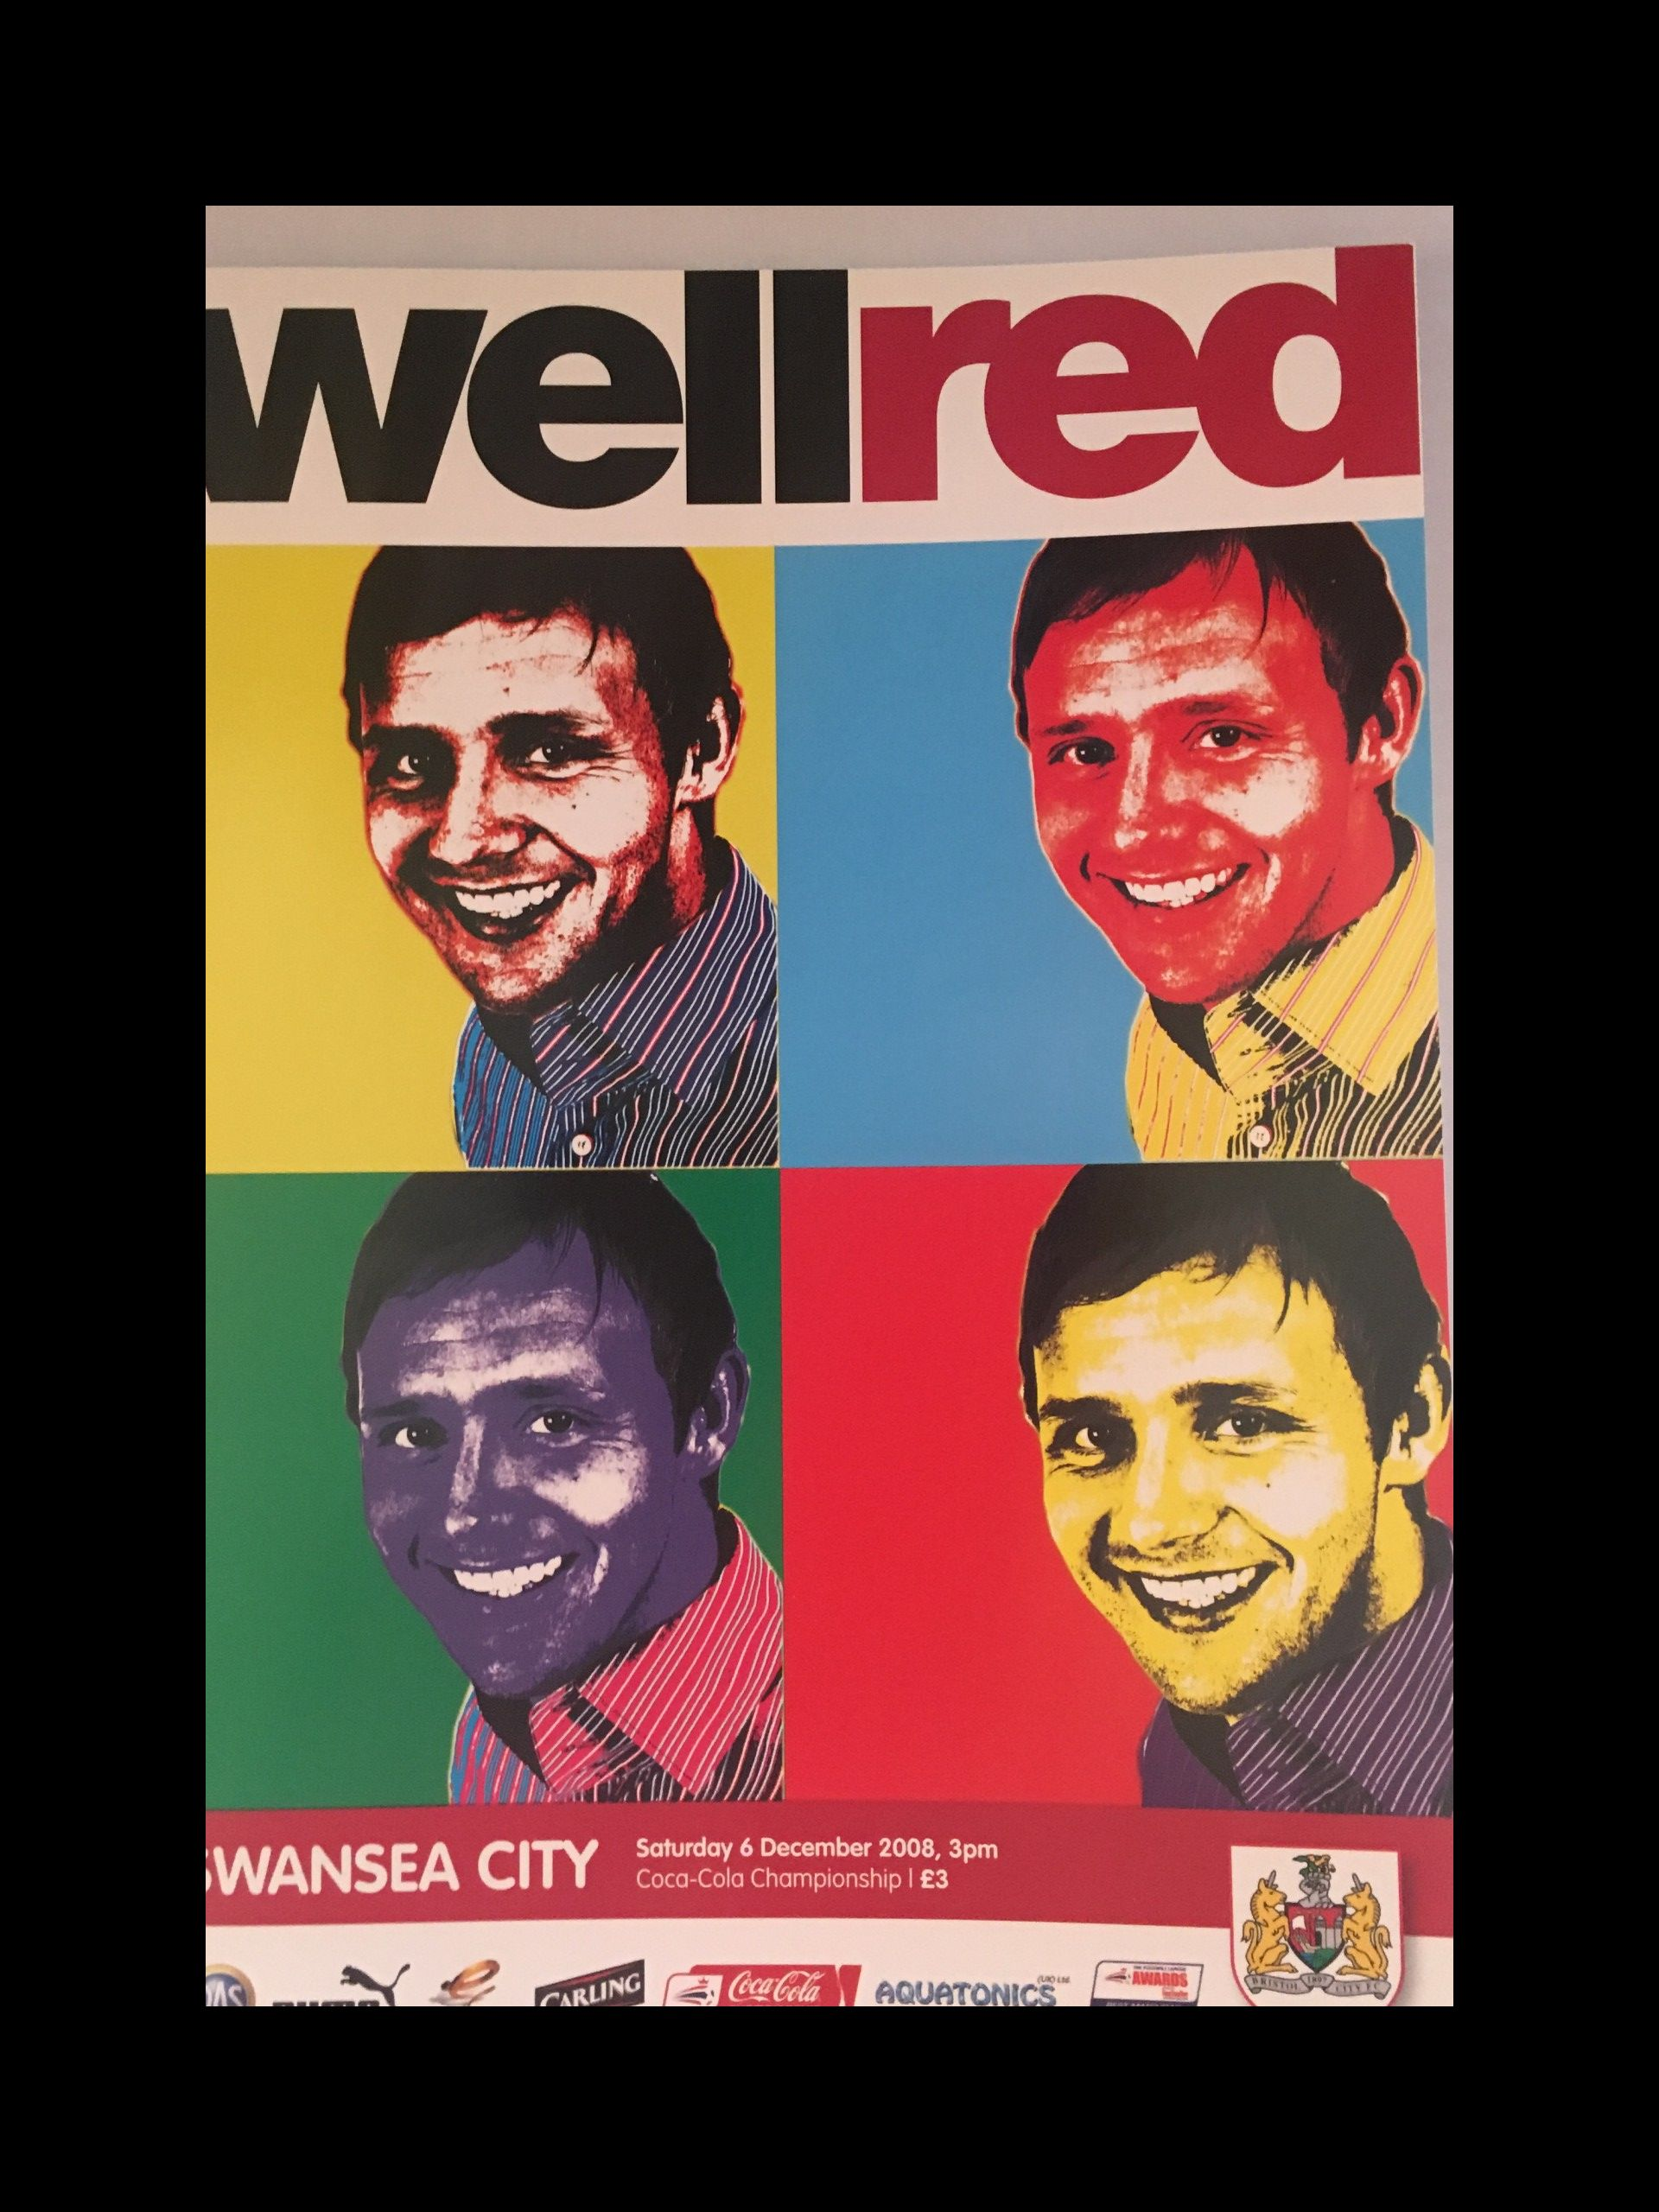 Bristol City v Swansea City 06-12-2008 Programme